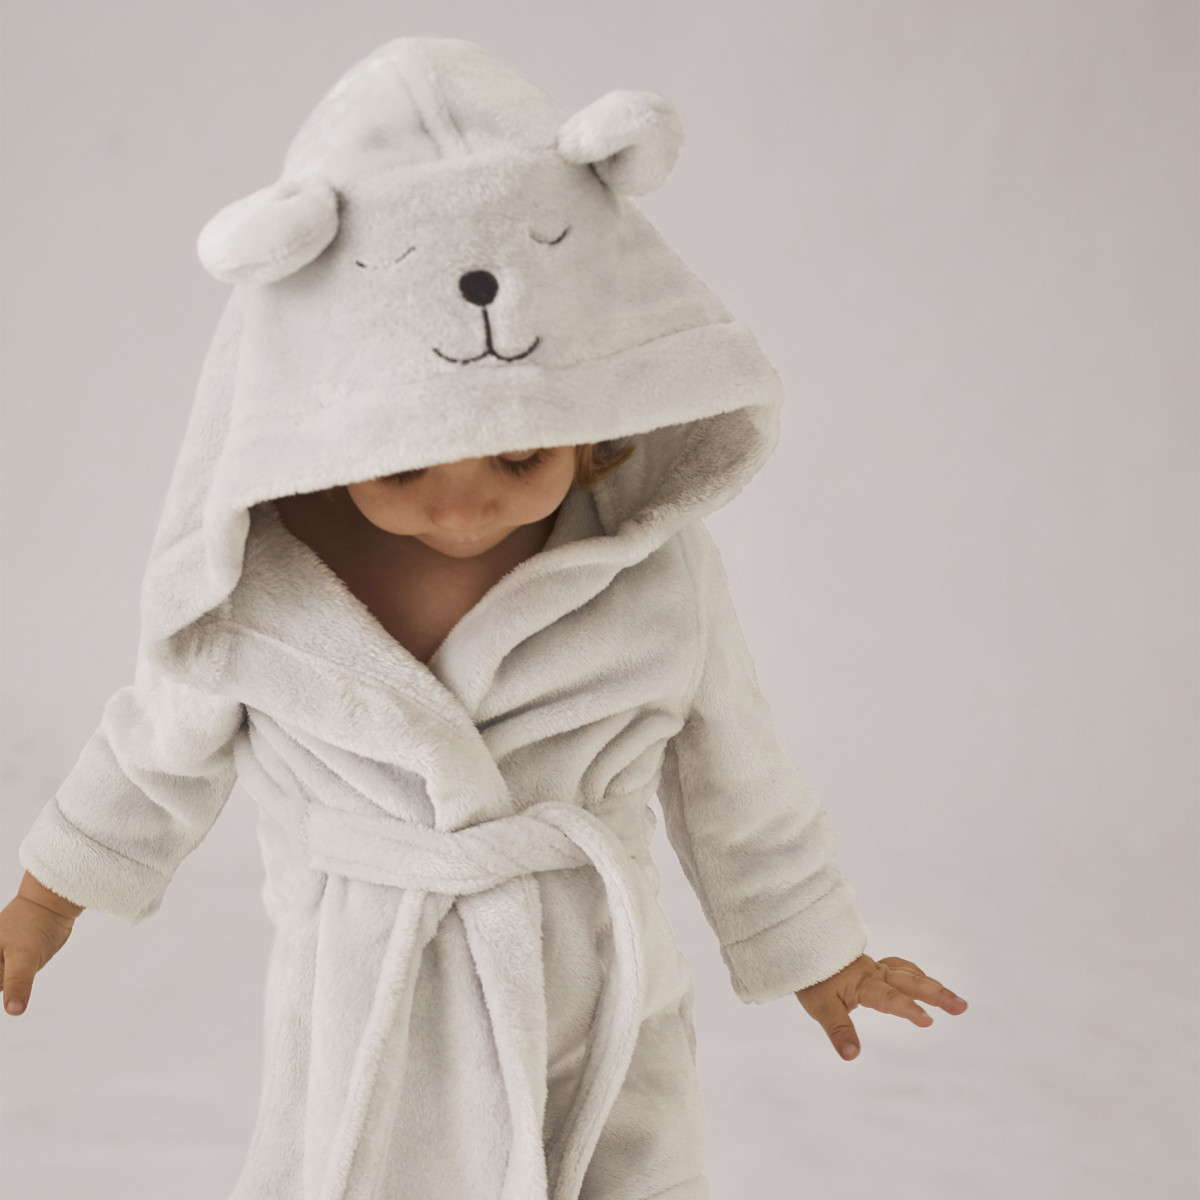 hugsie baby bathrobe